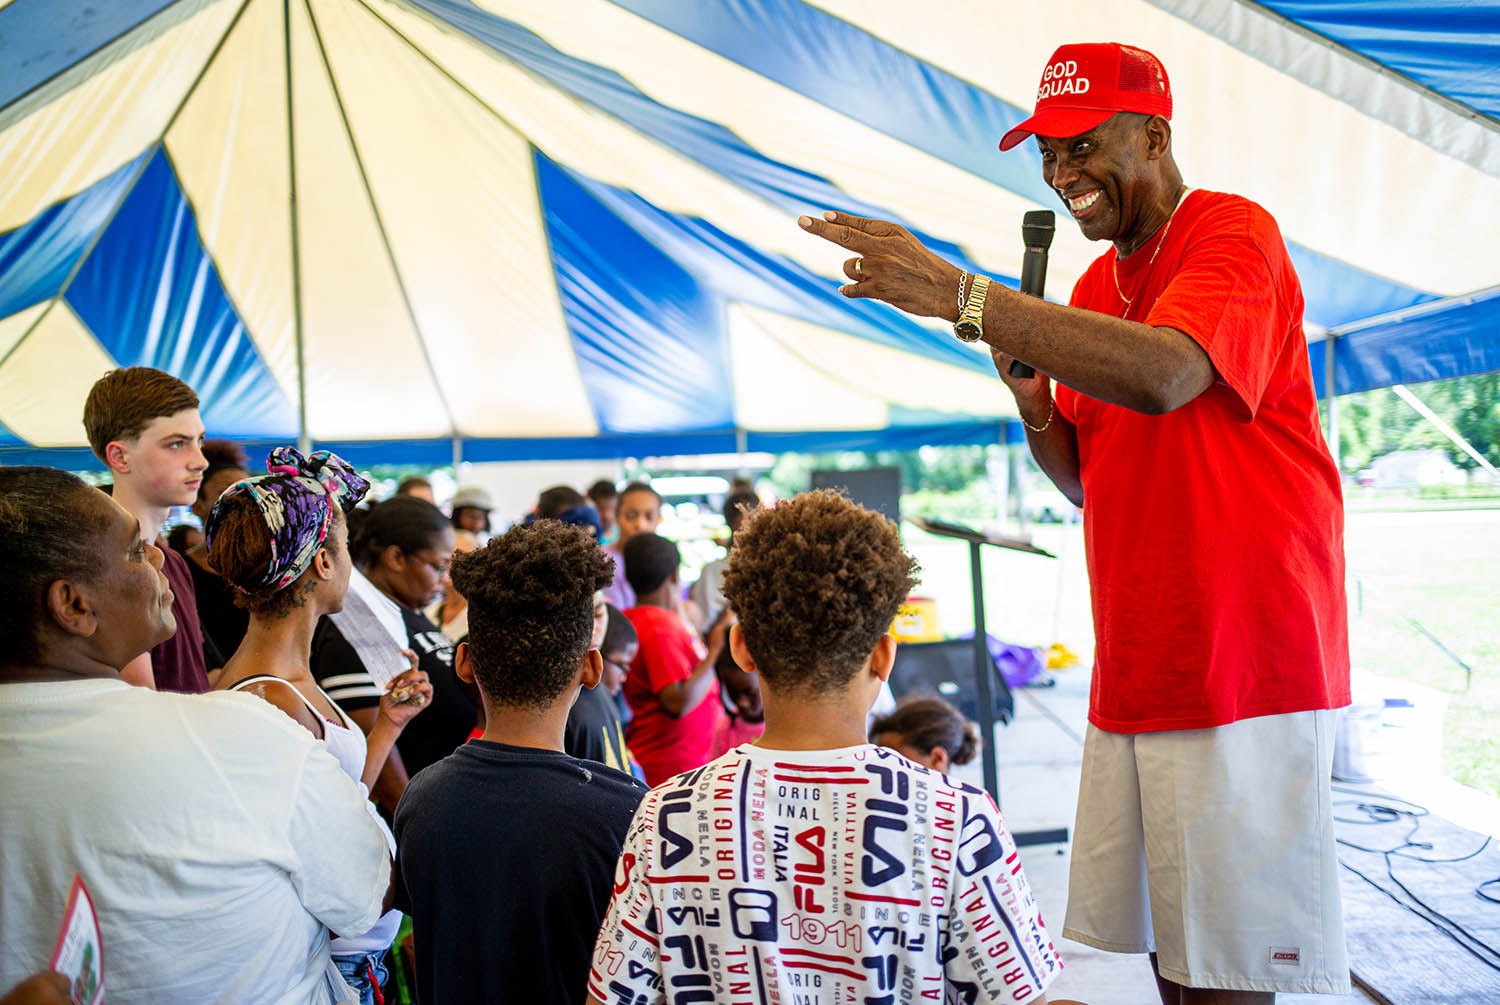 Jessie R. Bates, coordinator of the Stop the Violence Project, asks for attendees to come closer to the stage to pray with them after telling his story of surviving drugs and violence during the Stop the Violence Project's Back to School Block Party Street Festival at Jaycee Park, Saturday, July 13, 2019, in Springfield, Ill. The festival included opportunities with attendees to meet with area social services and also receive free book bags and a box of groceries. [Justin L. Fowler/The State Journal-Register]